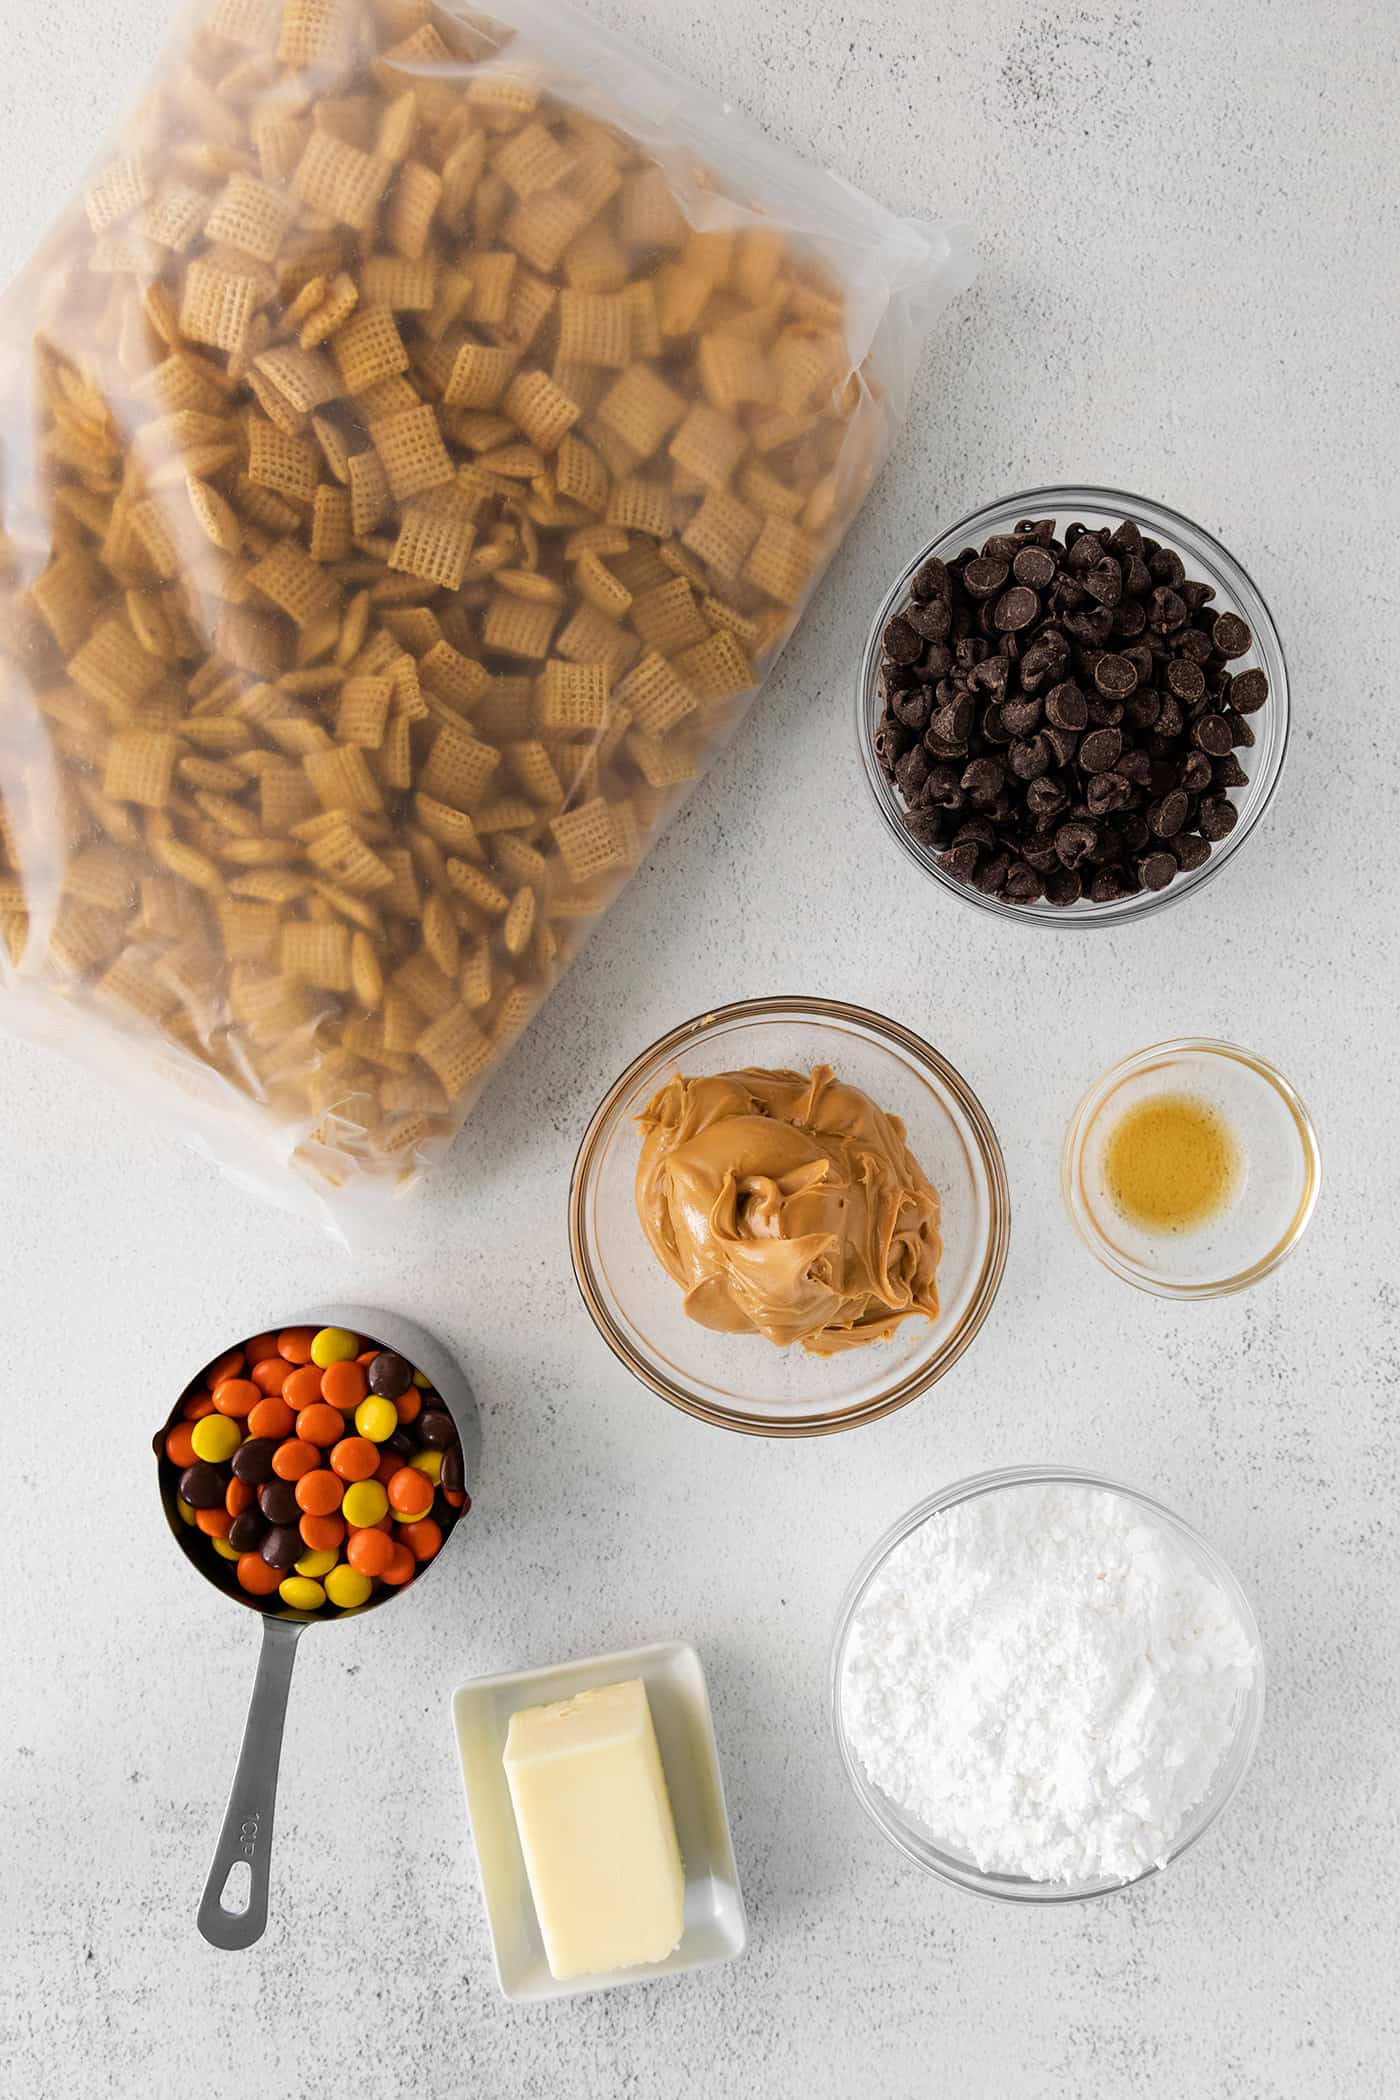 ingredients for making puppy chow